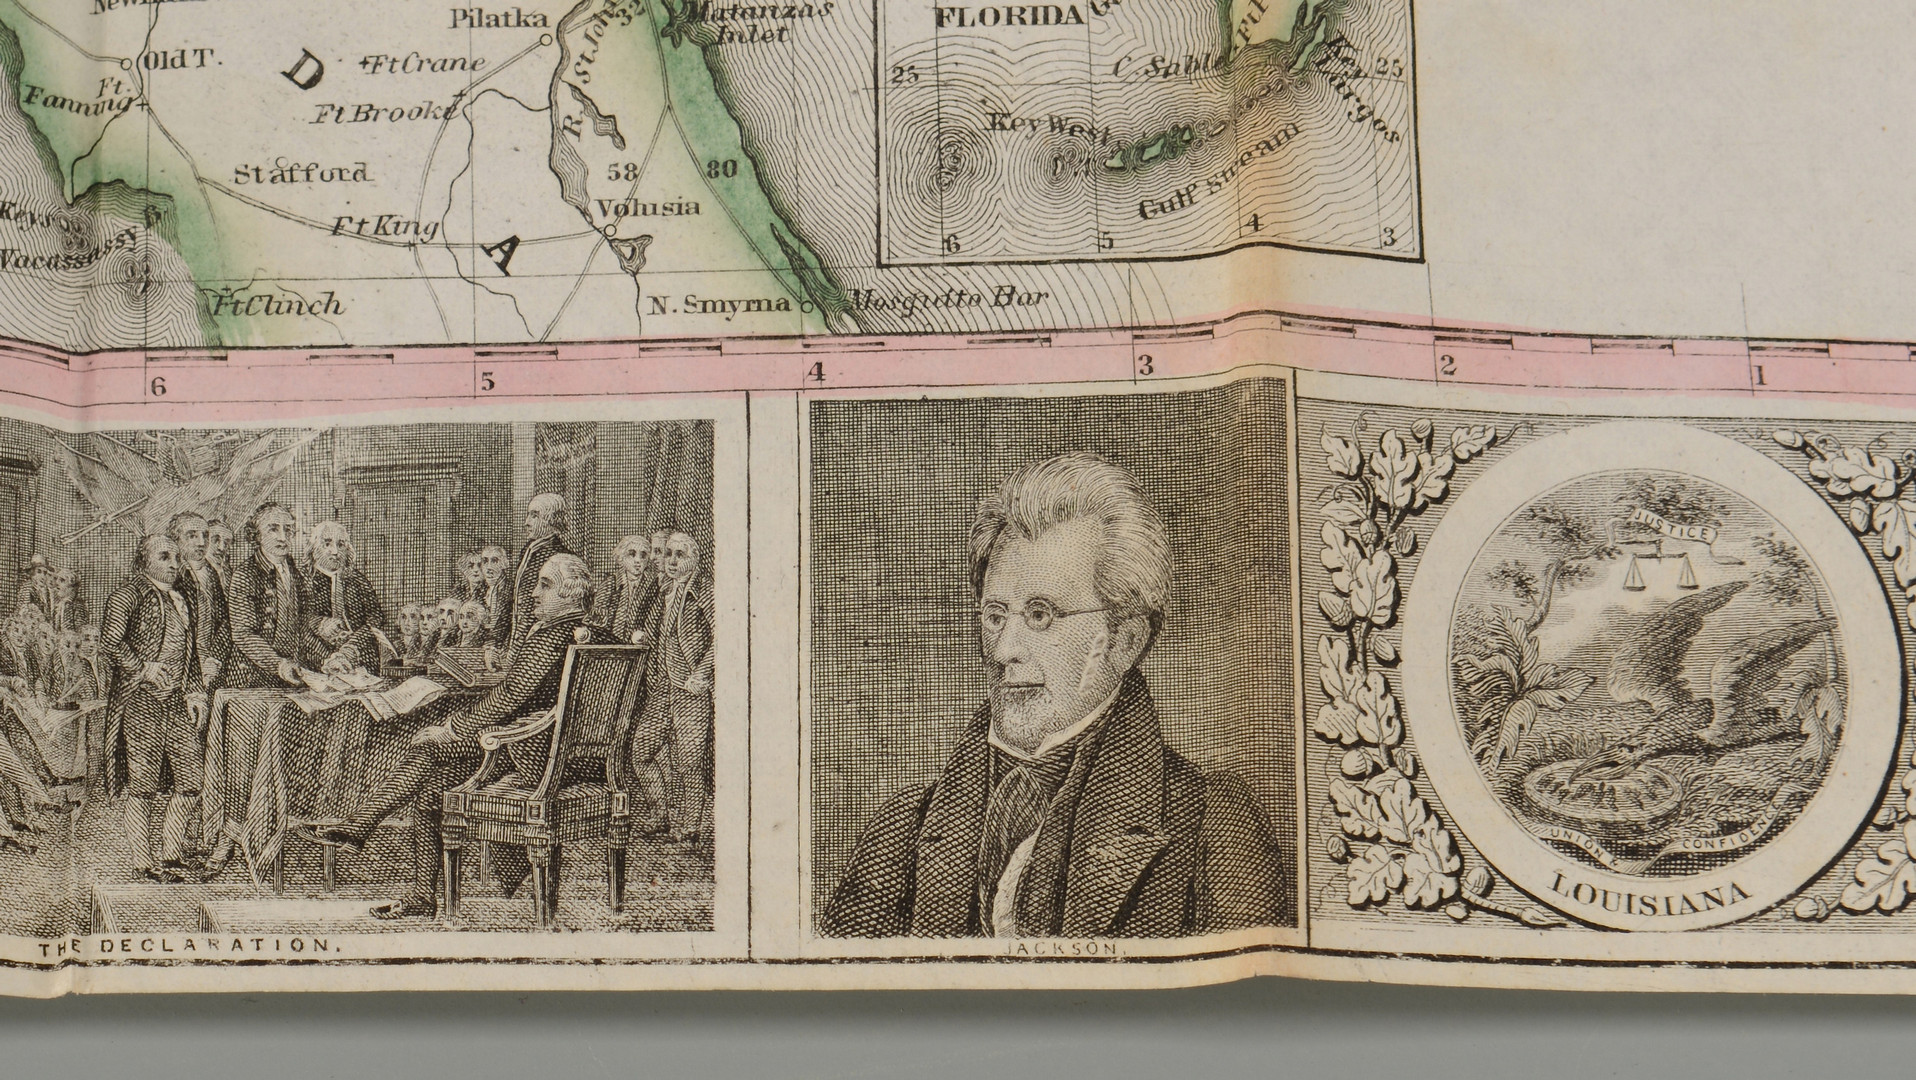 Lot 403: 1857 Phelps pocket map of United States